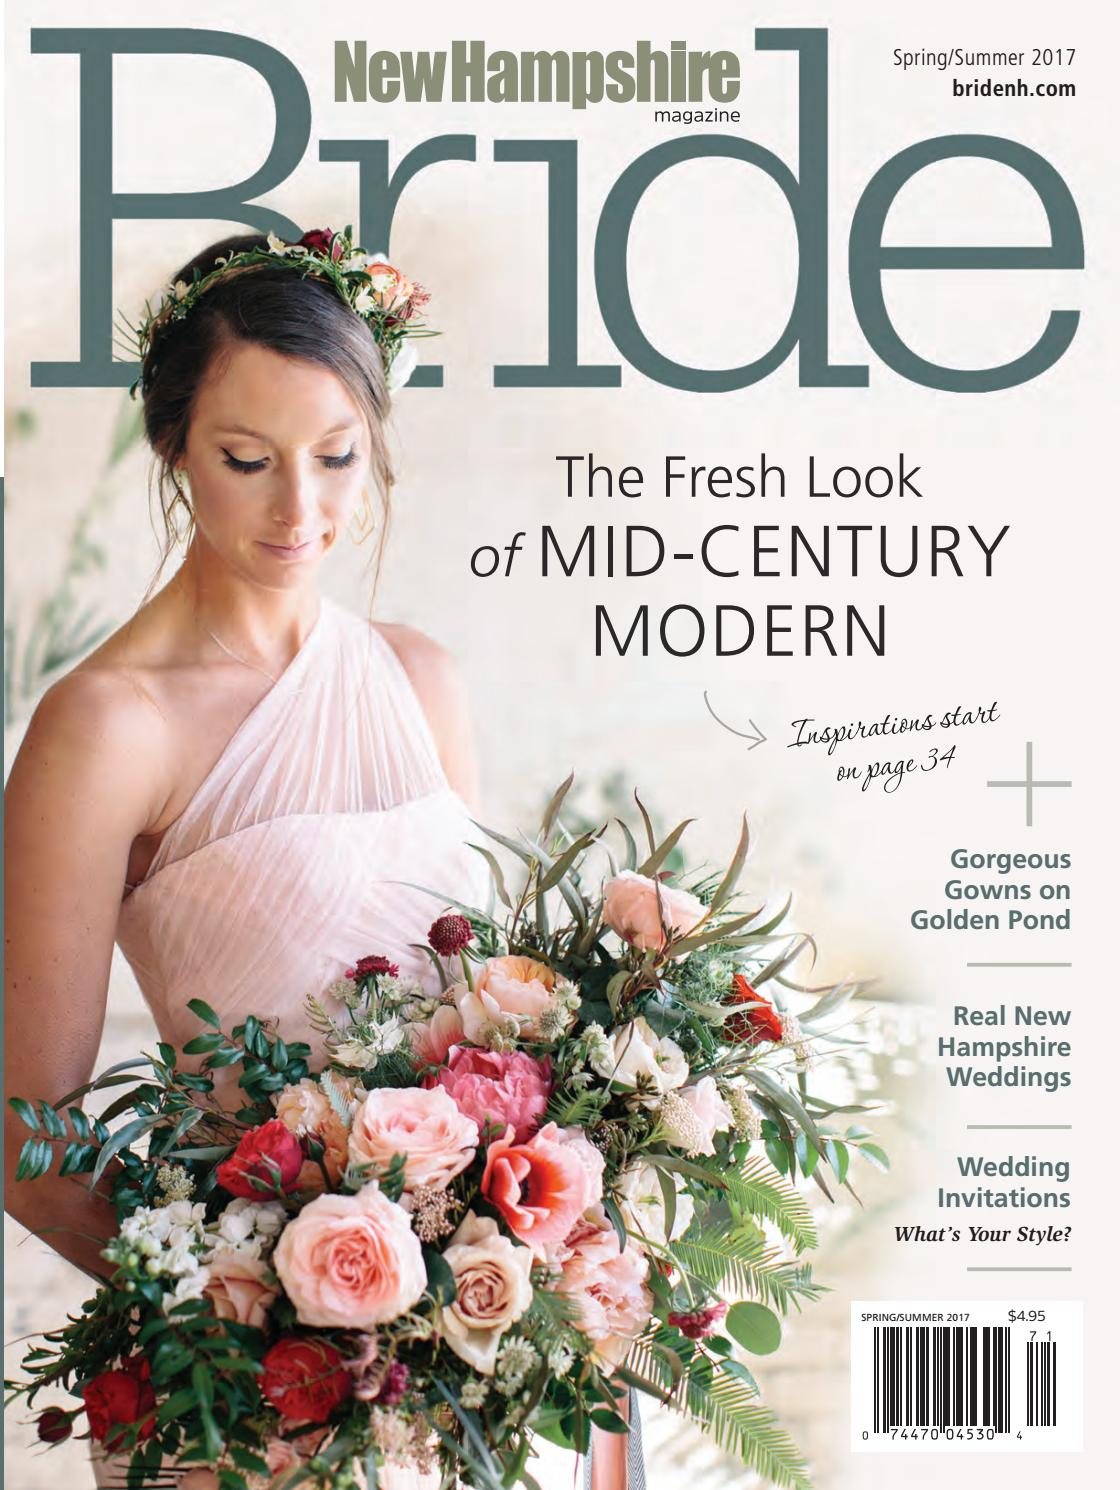 New Hampshire Bride Spring/Summer 2017 by McLean Communications - issuu